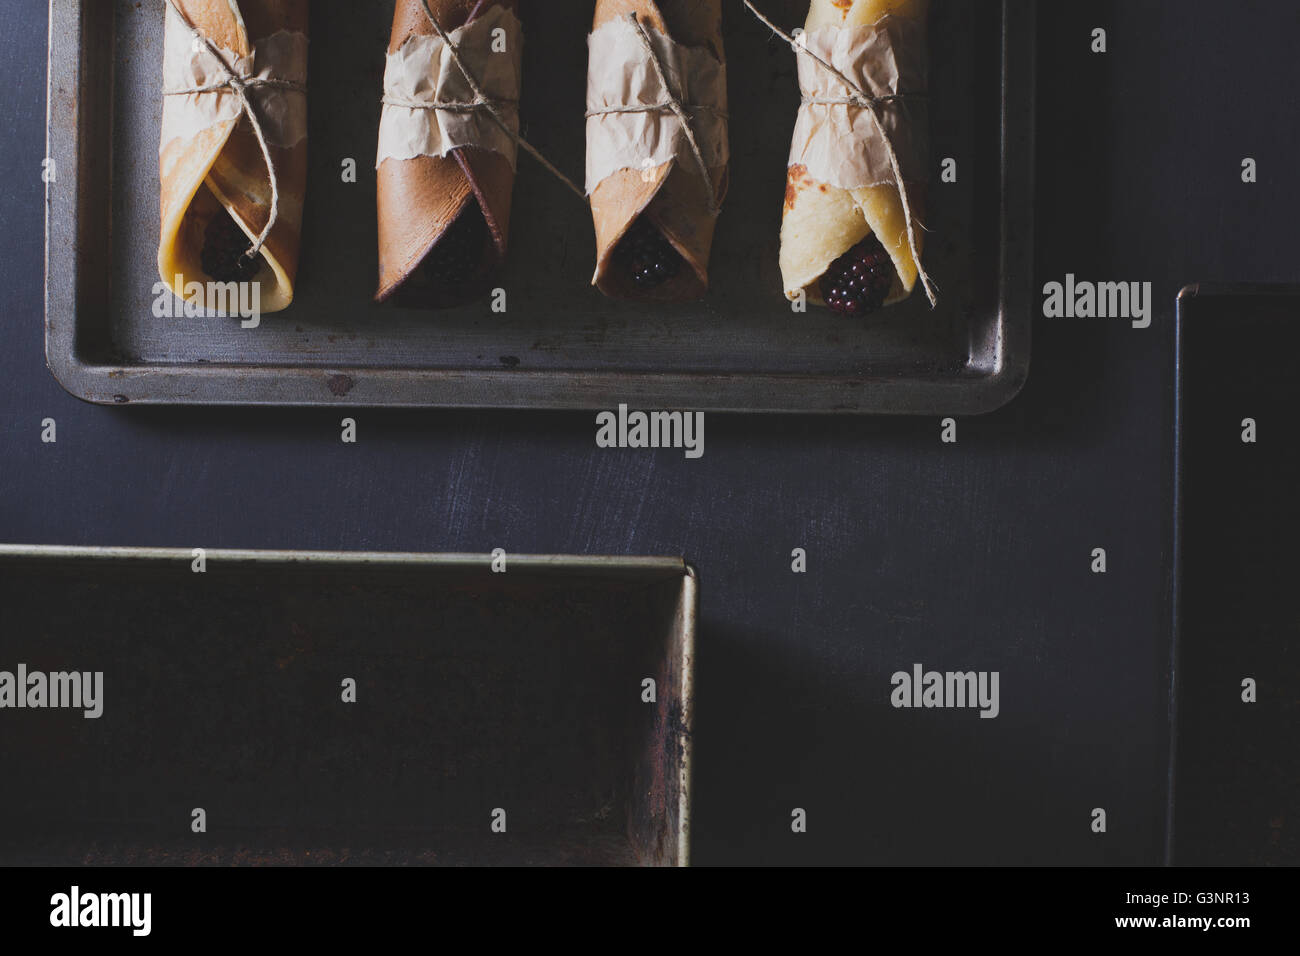 Pancakes with blackberries on rusty tinwere with silver knife and fork on scratched blackboard with baking trays - Stock Image